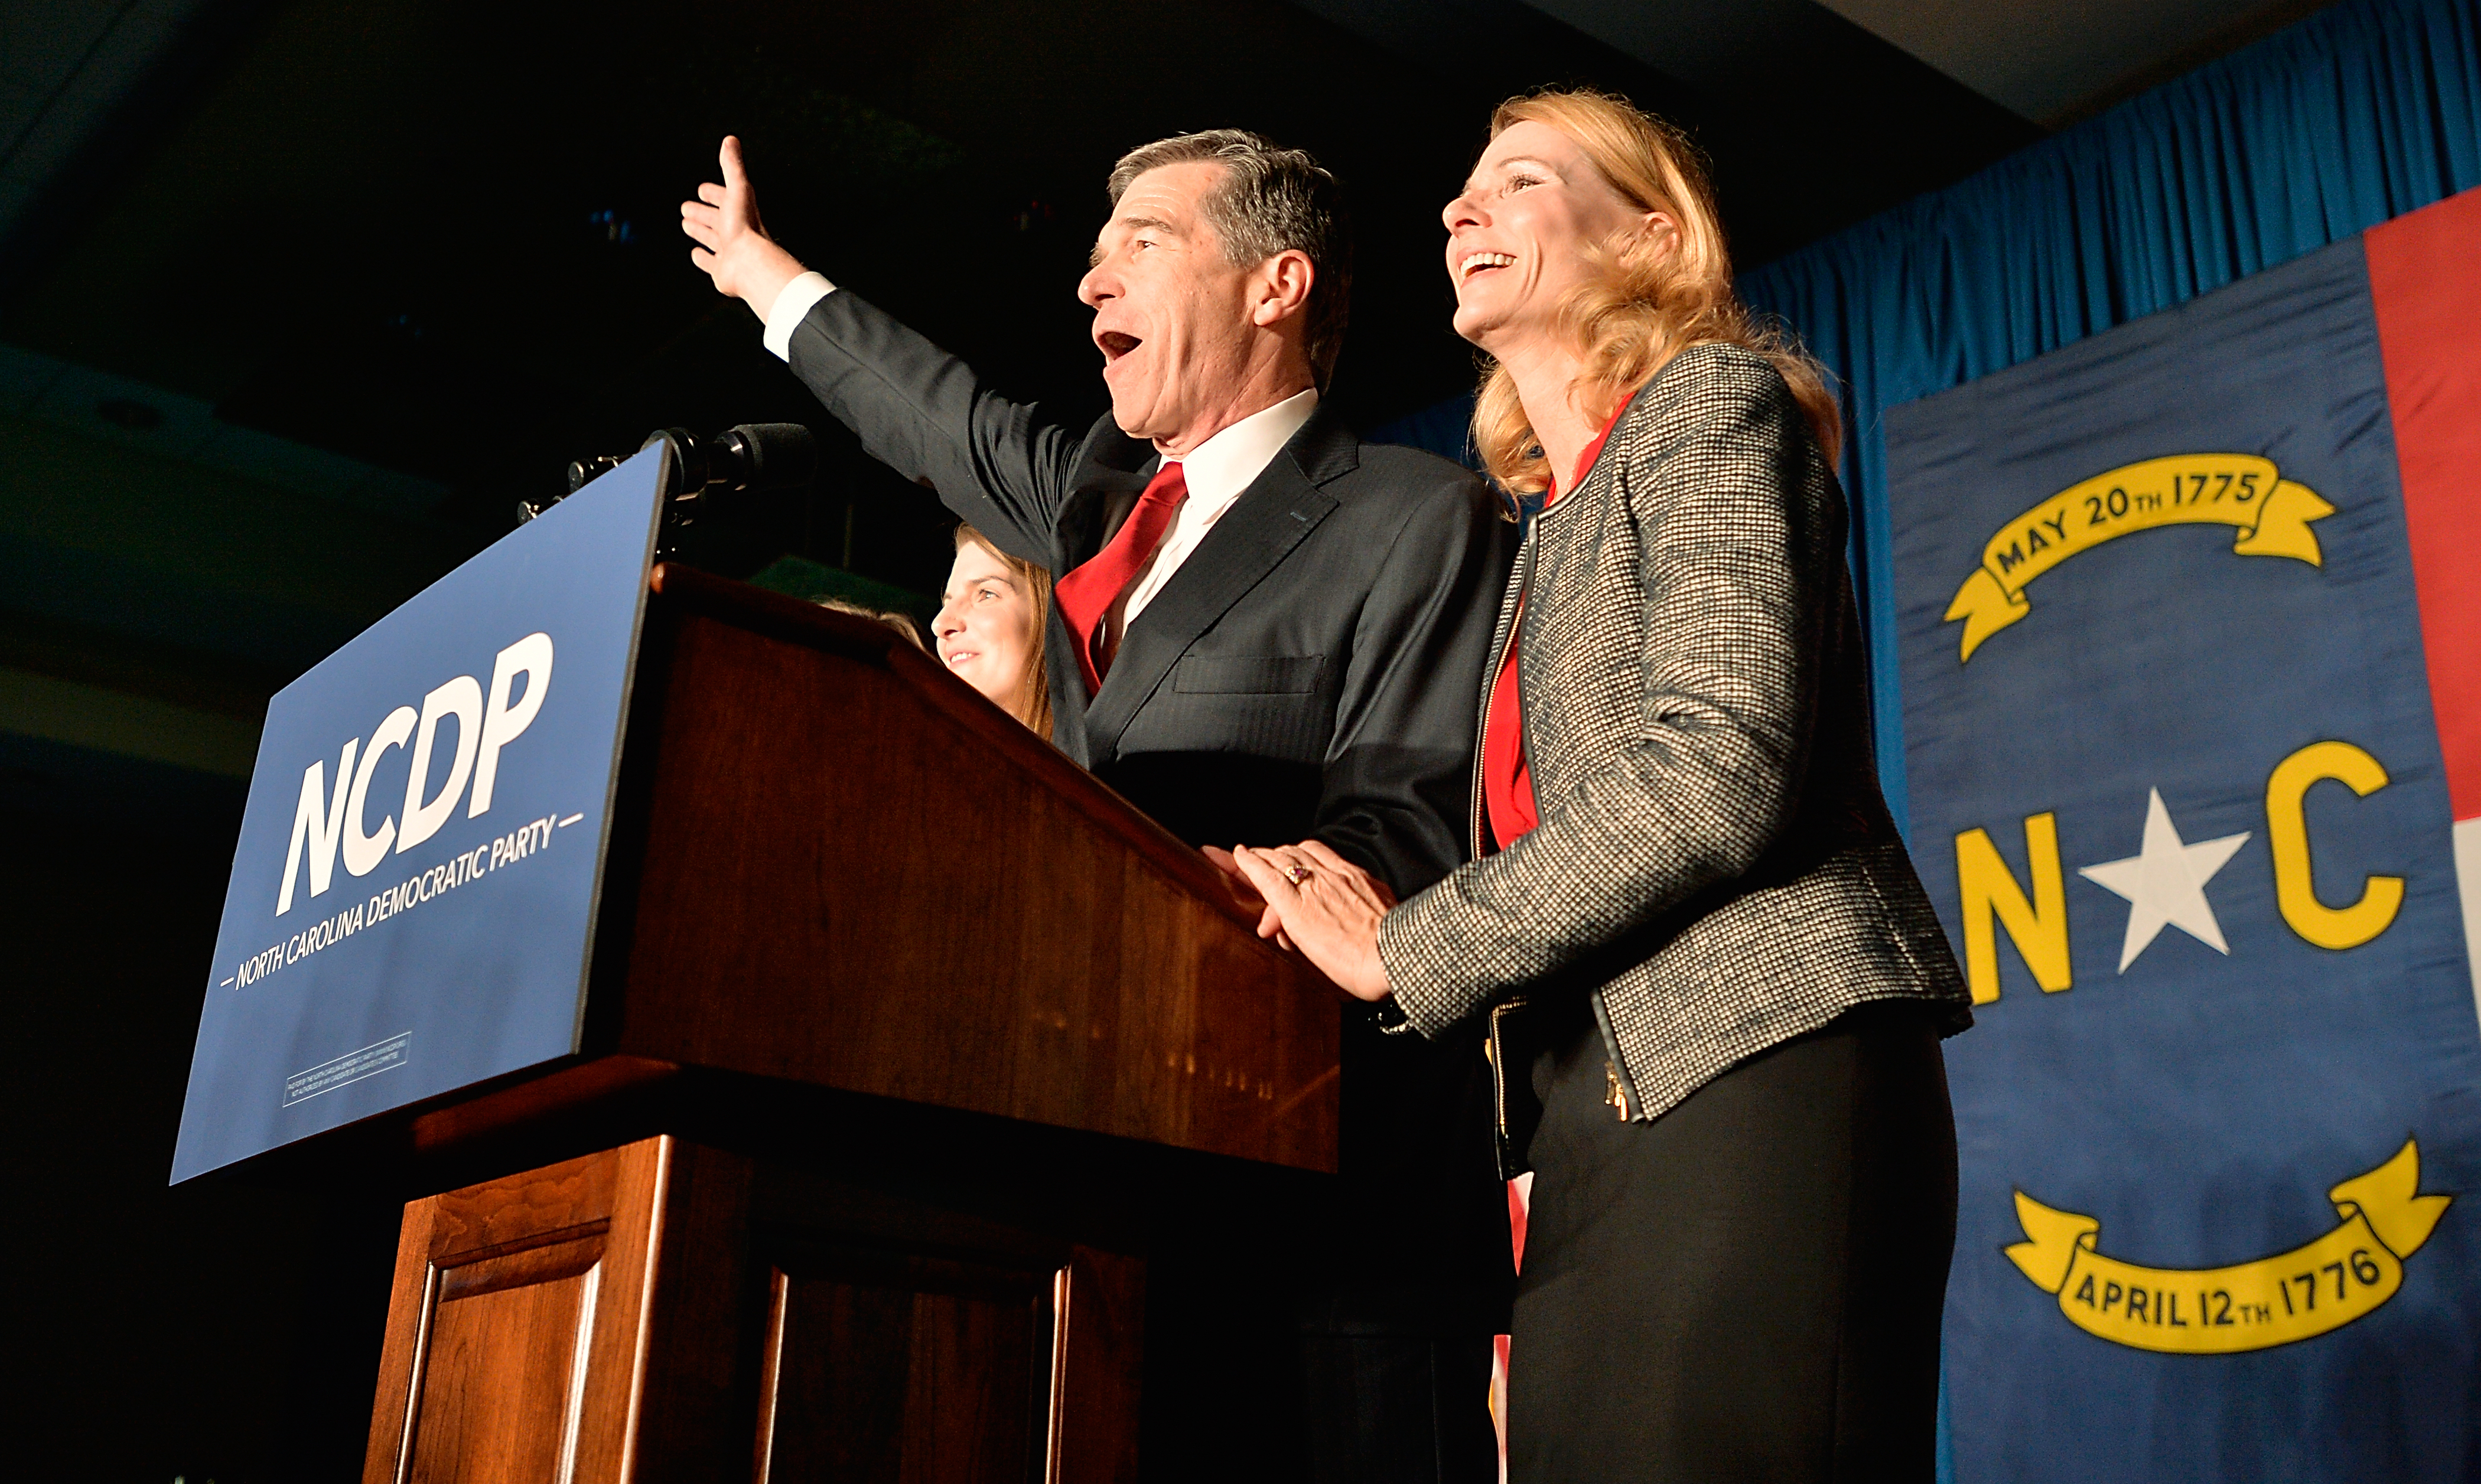 North Carolina Democratic presumptive Governor elect Roy Cooper waves to a crowd alongside his wife, Kristin Cooper, at the North Carolina Democratic Watch Party on November 9, 2016 in Raleigh, North Carolina. (Sara D. Davis/Getty Images)